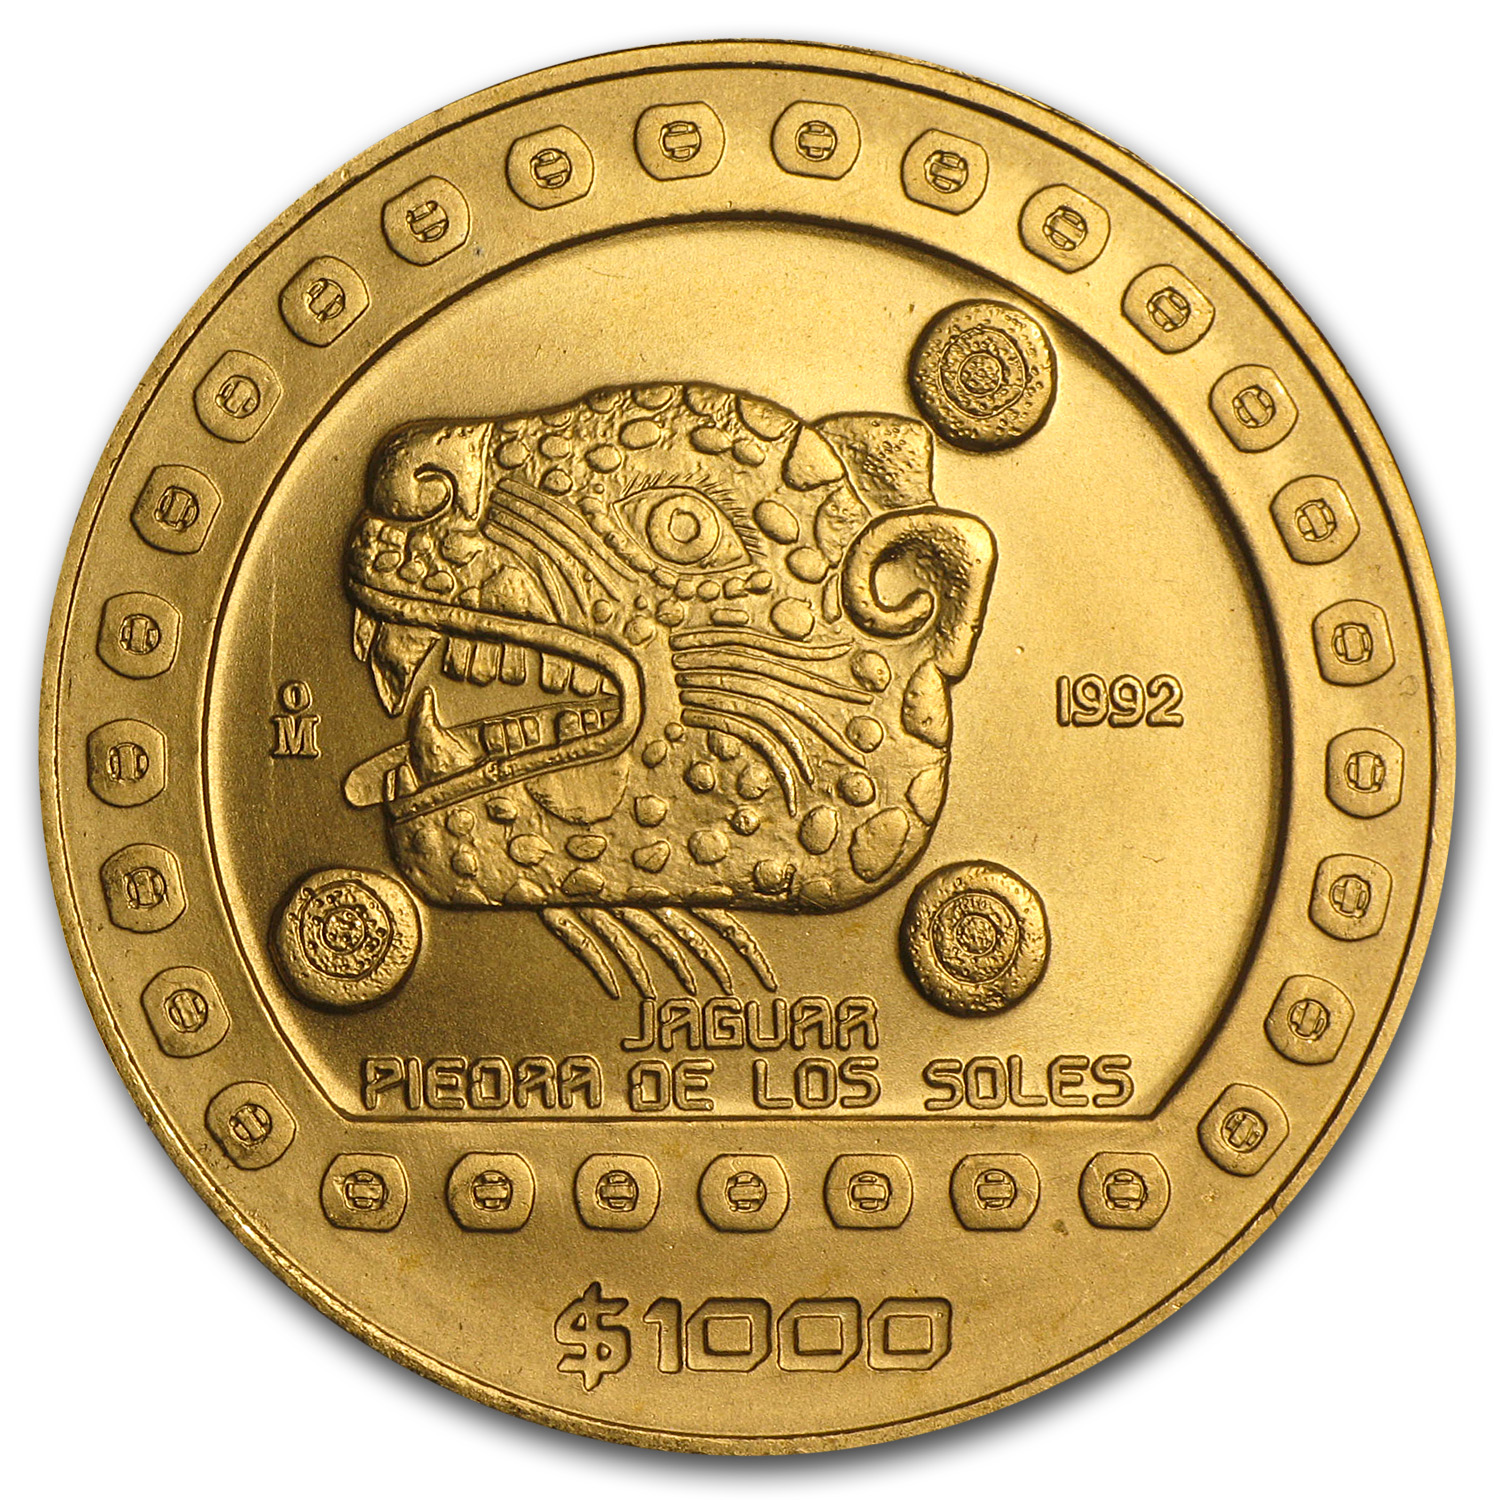 1992 Mexico 100 Pesos Gold Jaguar BU